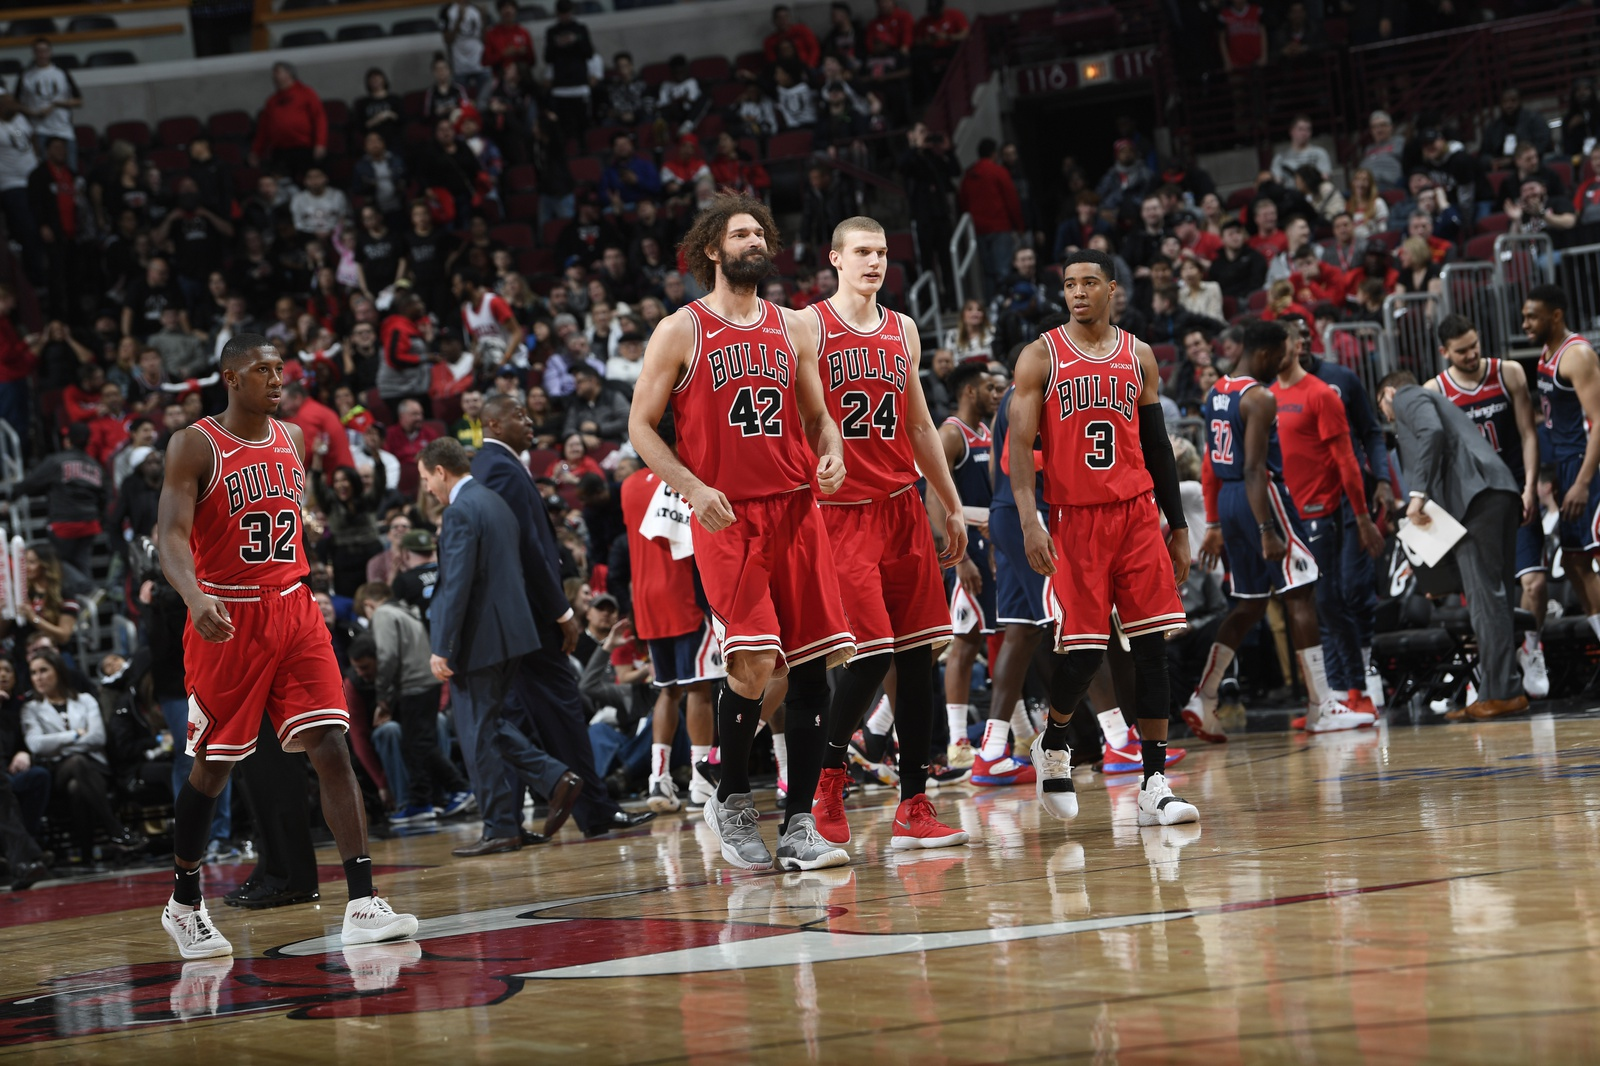 A team shot of the Chicago Bulls walking toward the bench